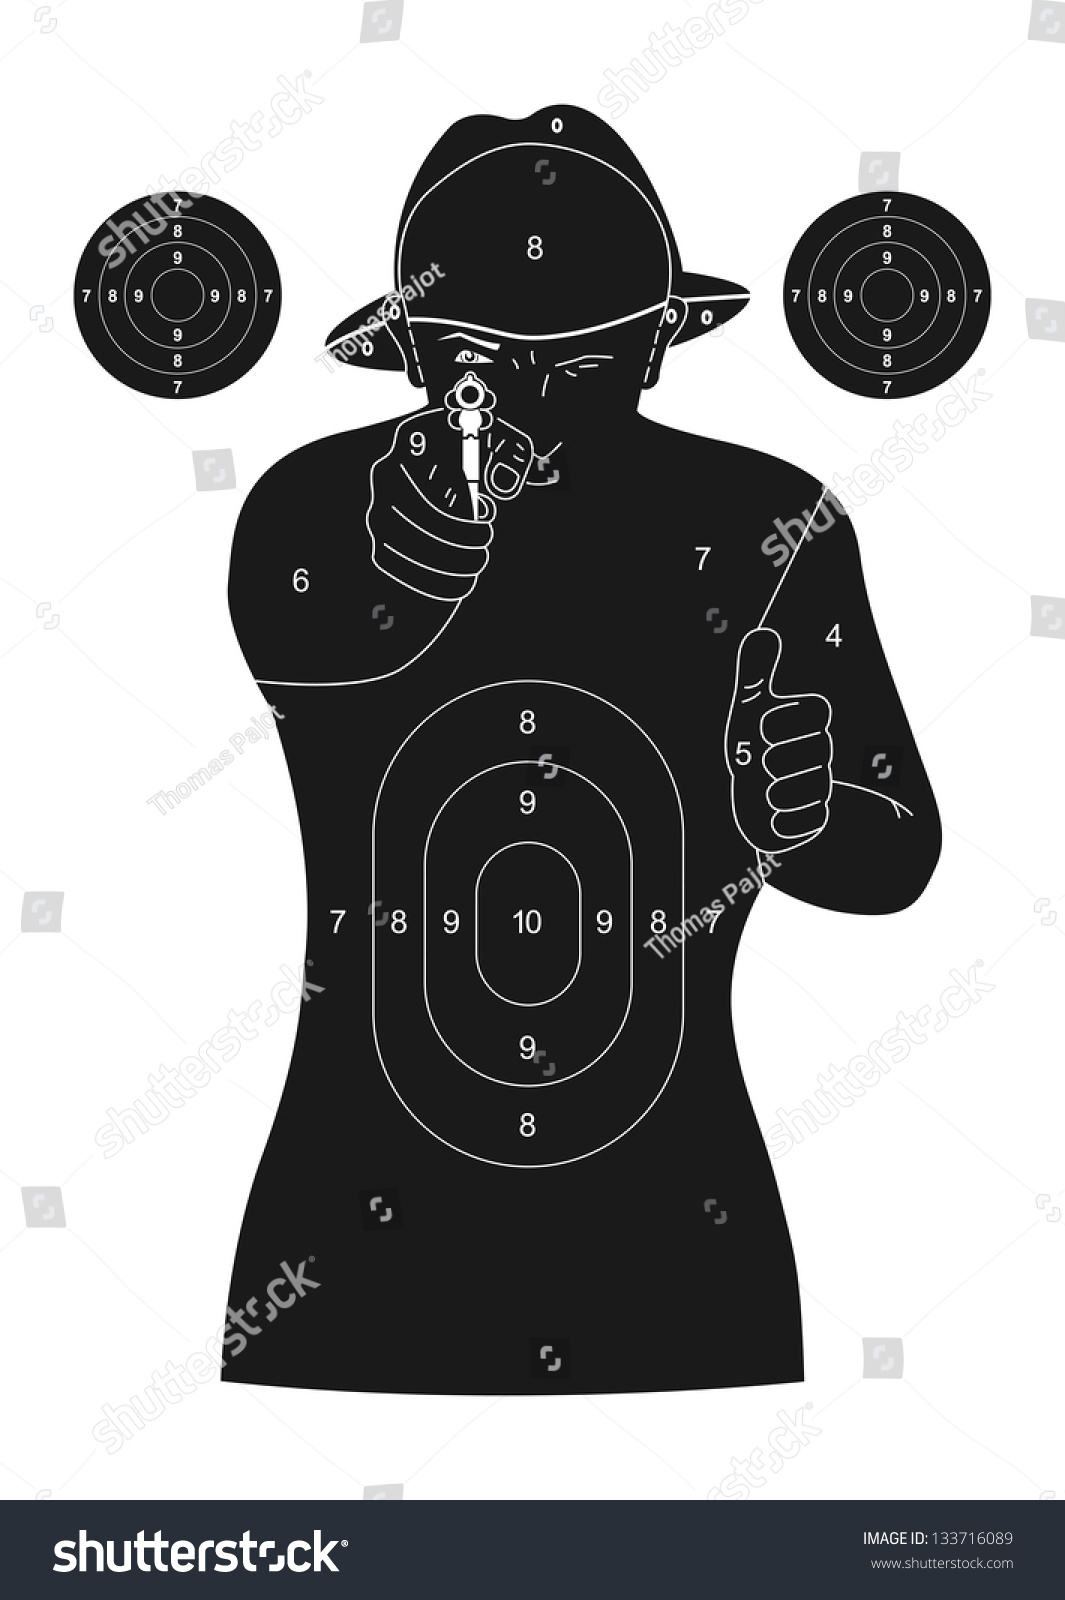 Playful image for printable human silhouette targets